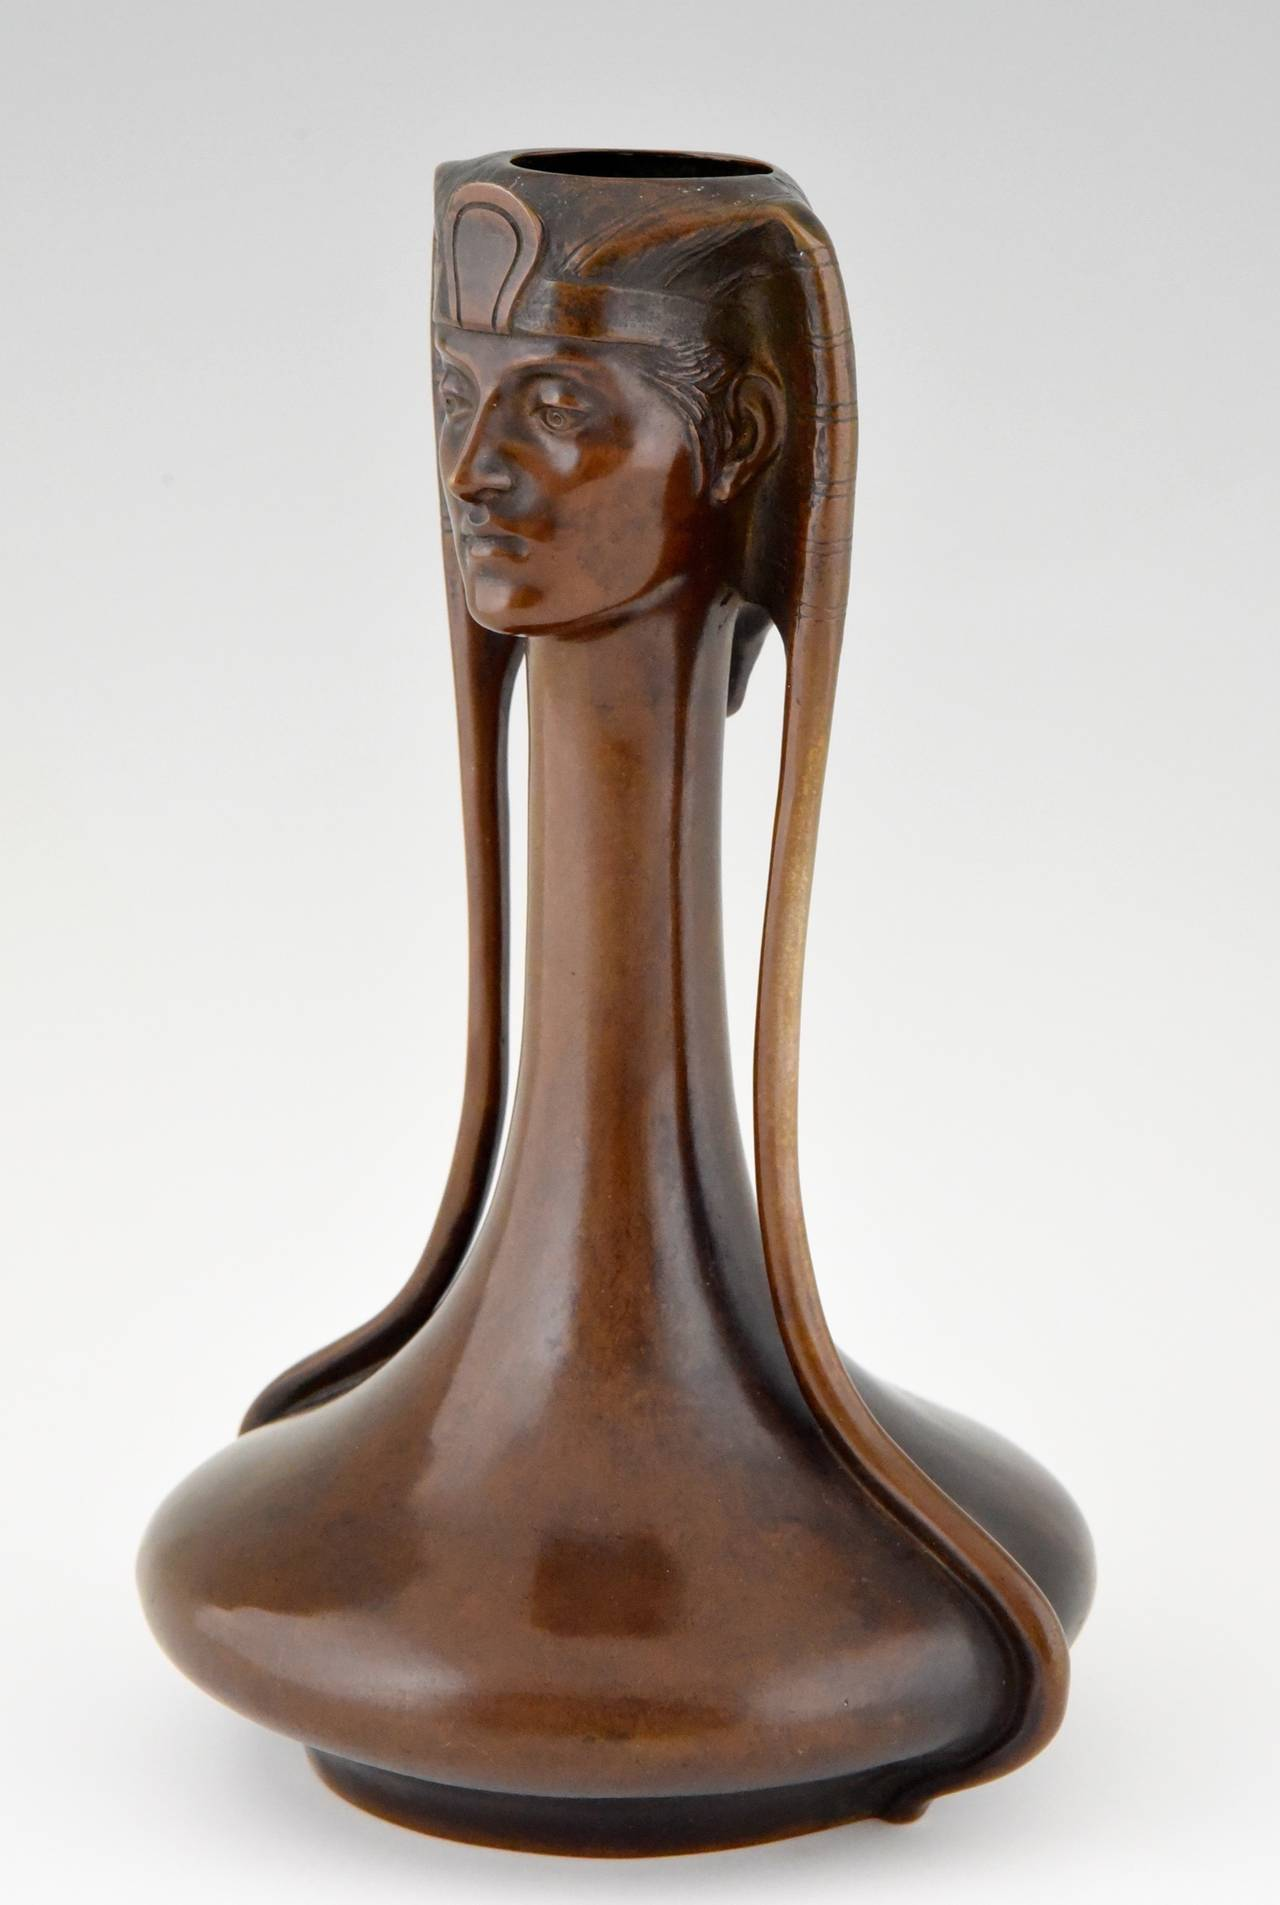 Art Nouveau Vienna bronze Egyptian vase with Pharaoh by A. Canciani 3